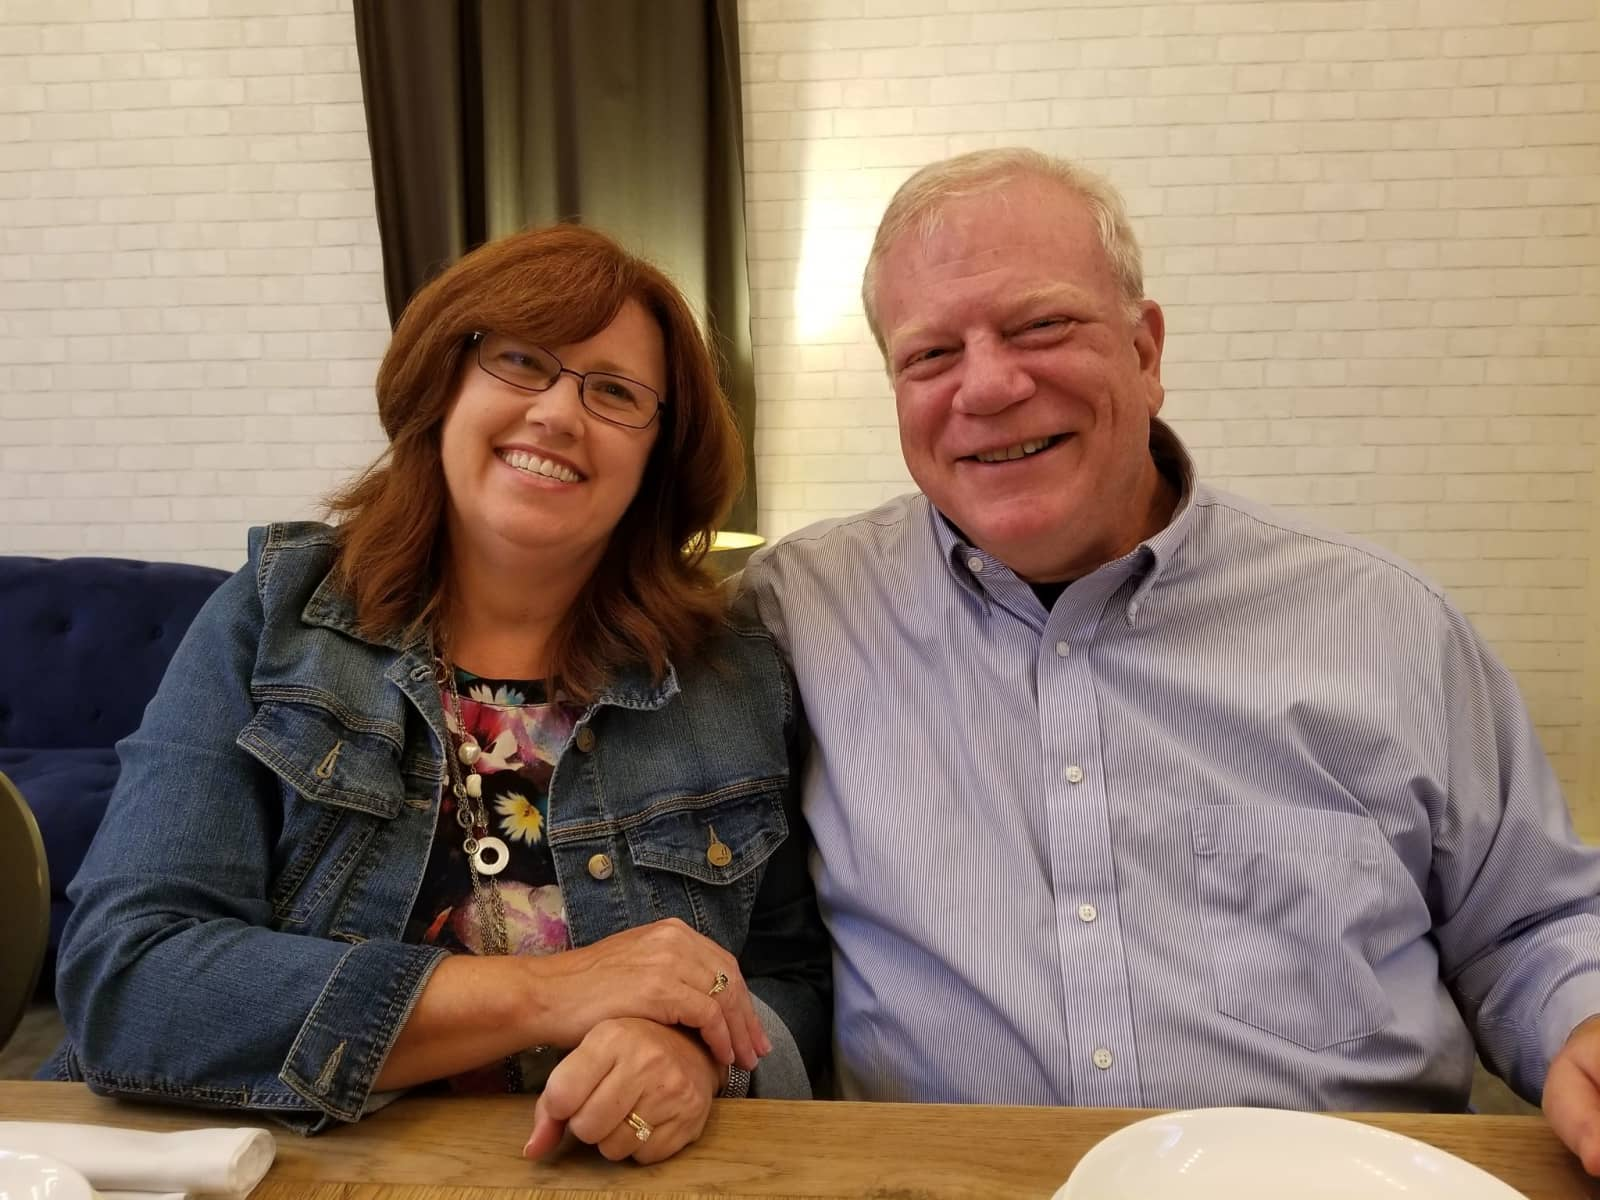 Pam & Mike from Louisville, Kentucky, United States